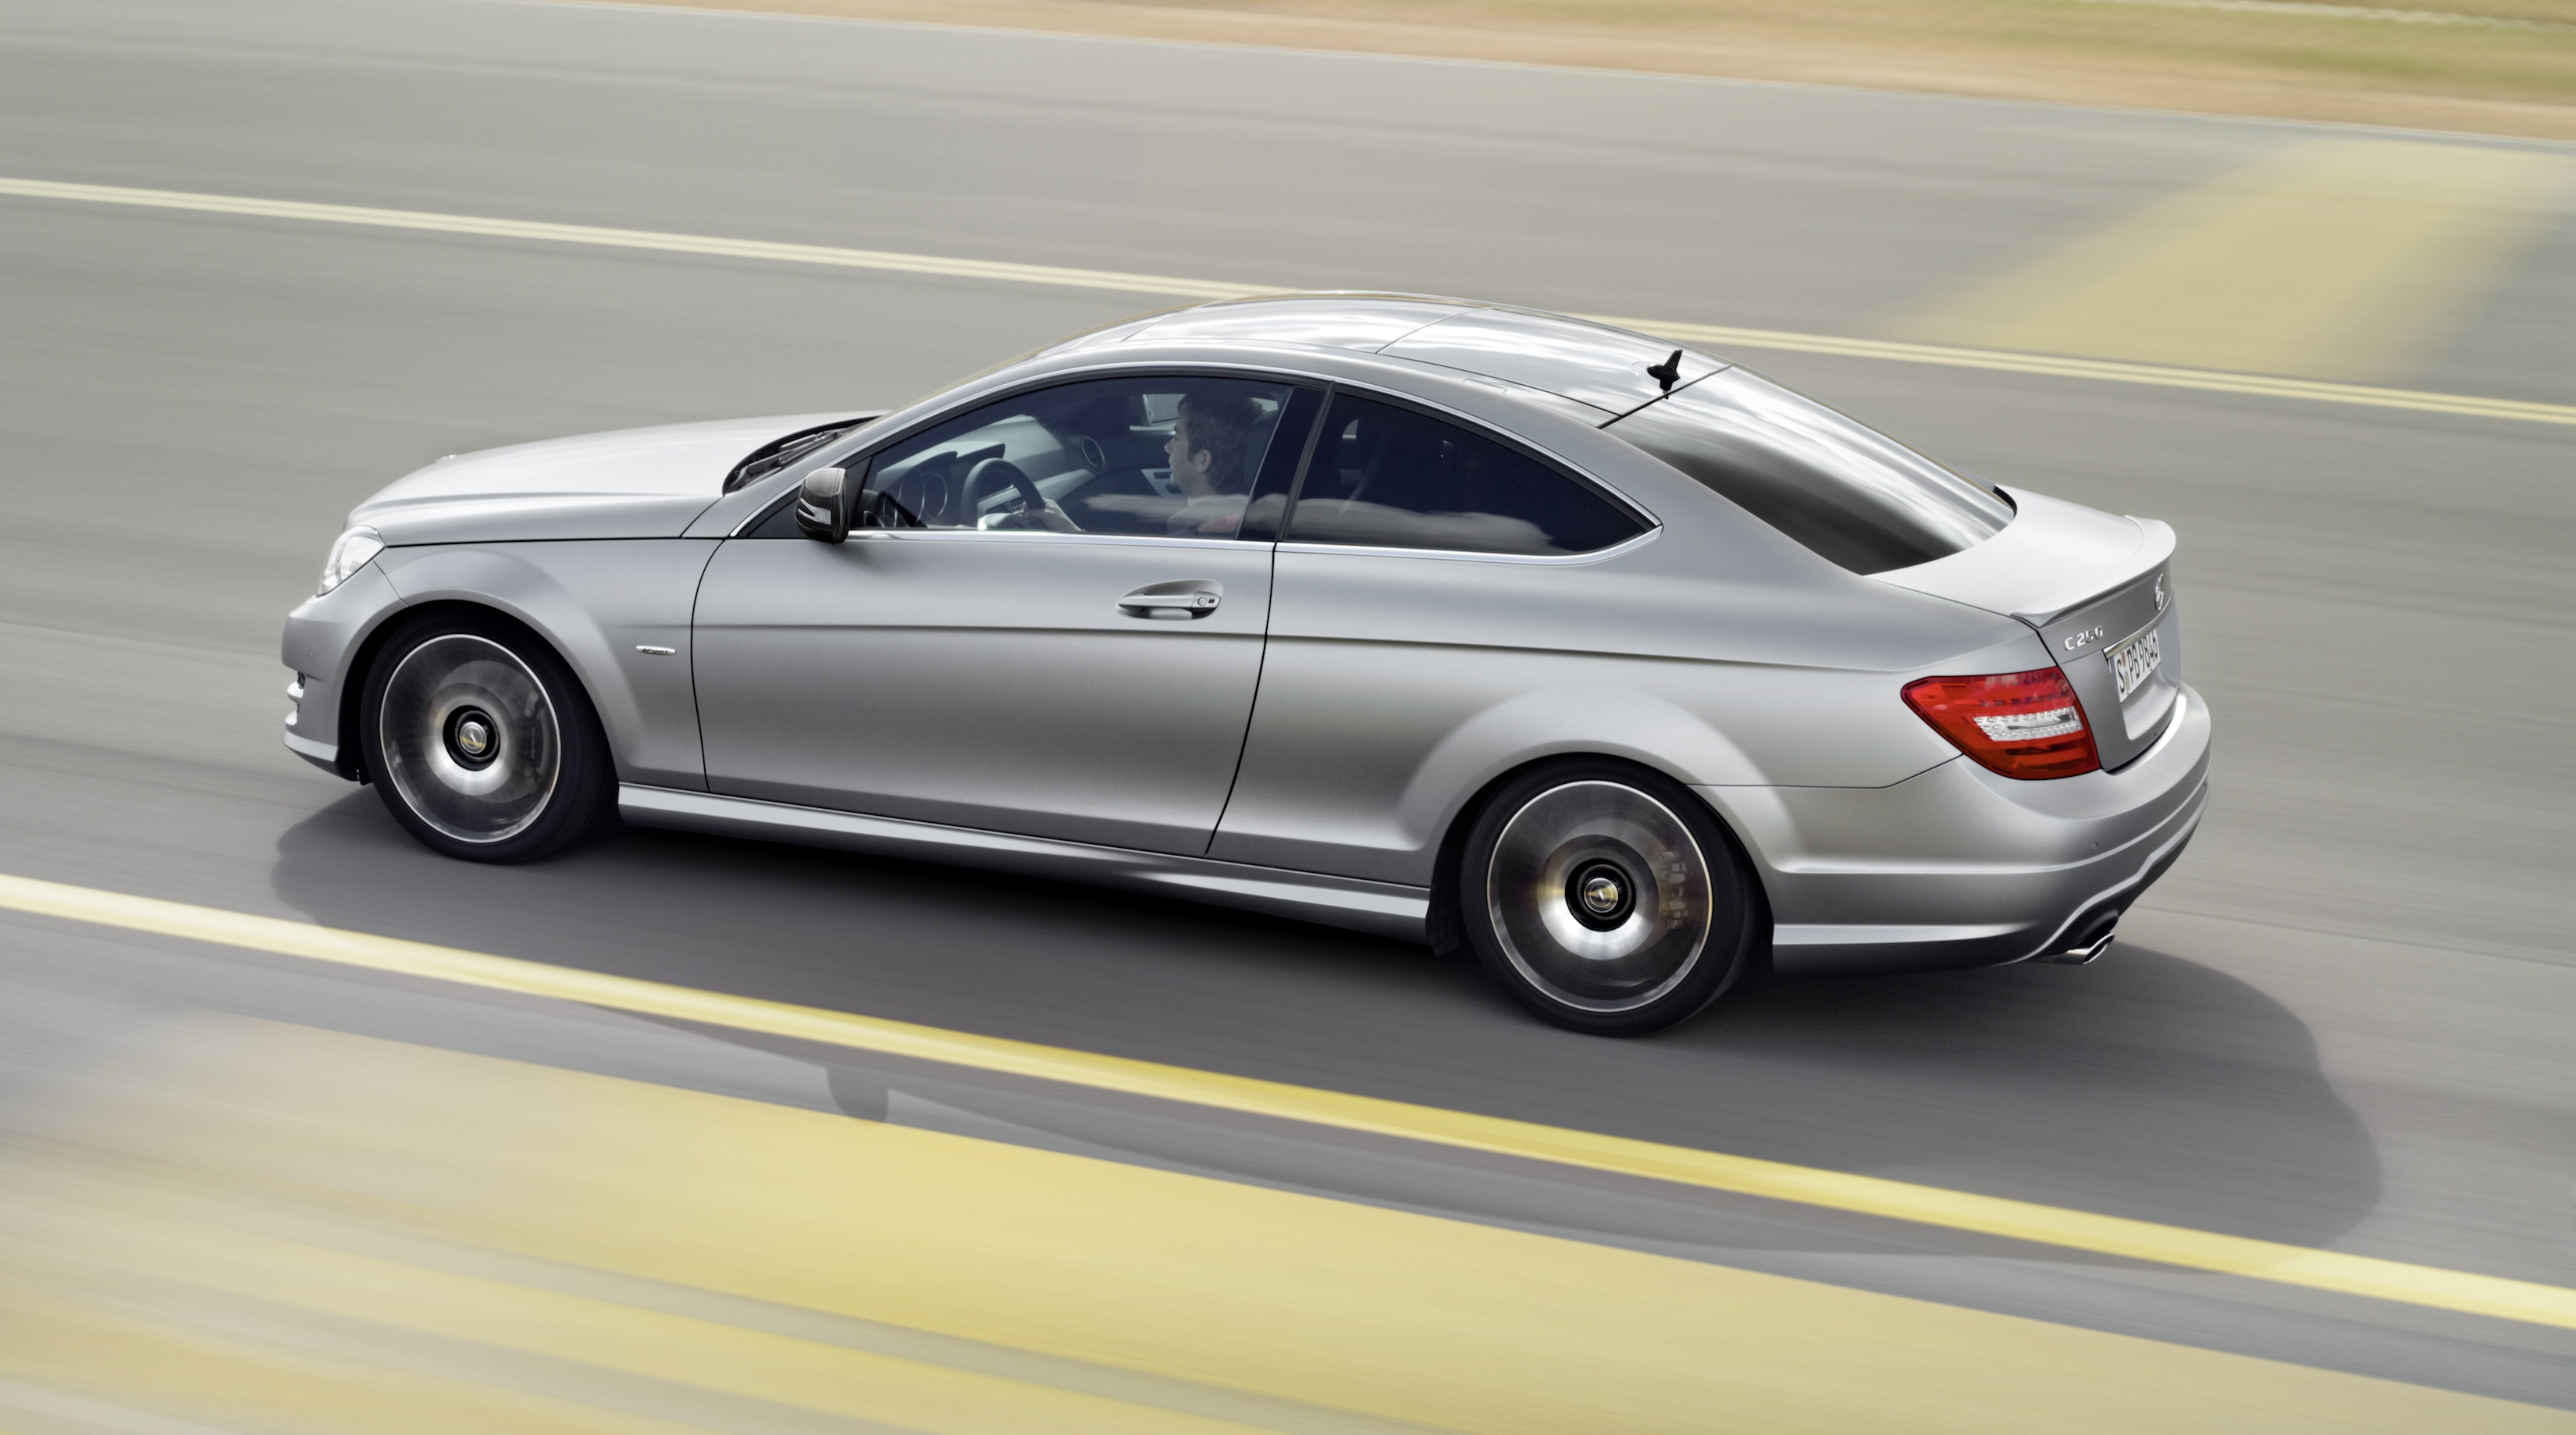 Mercedes benz c250 coupe sport adds amg visuals and for 2010 mercedes benz c250